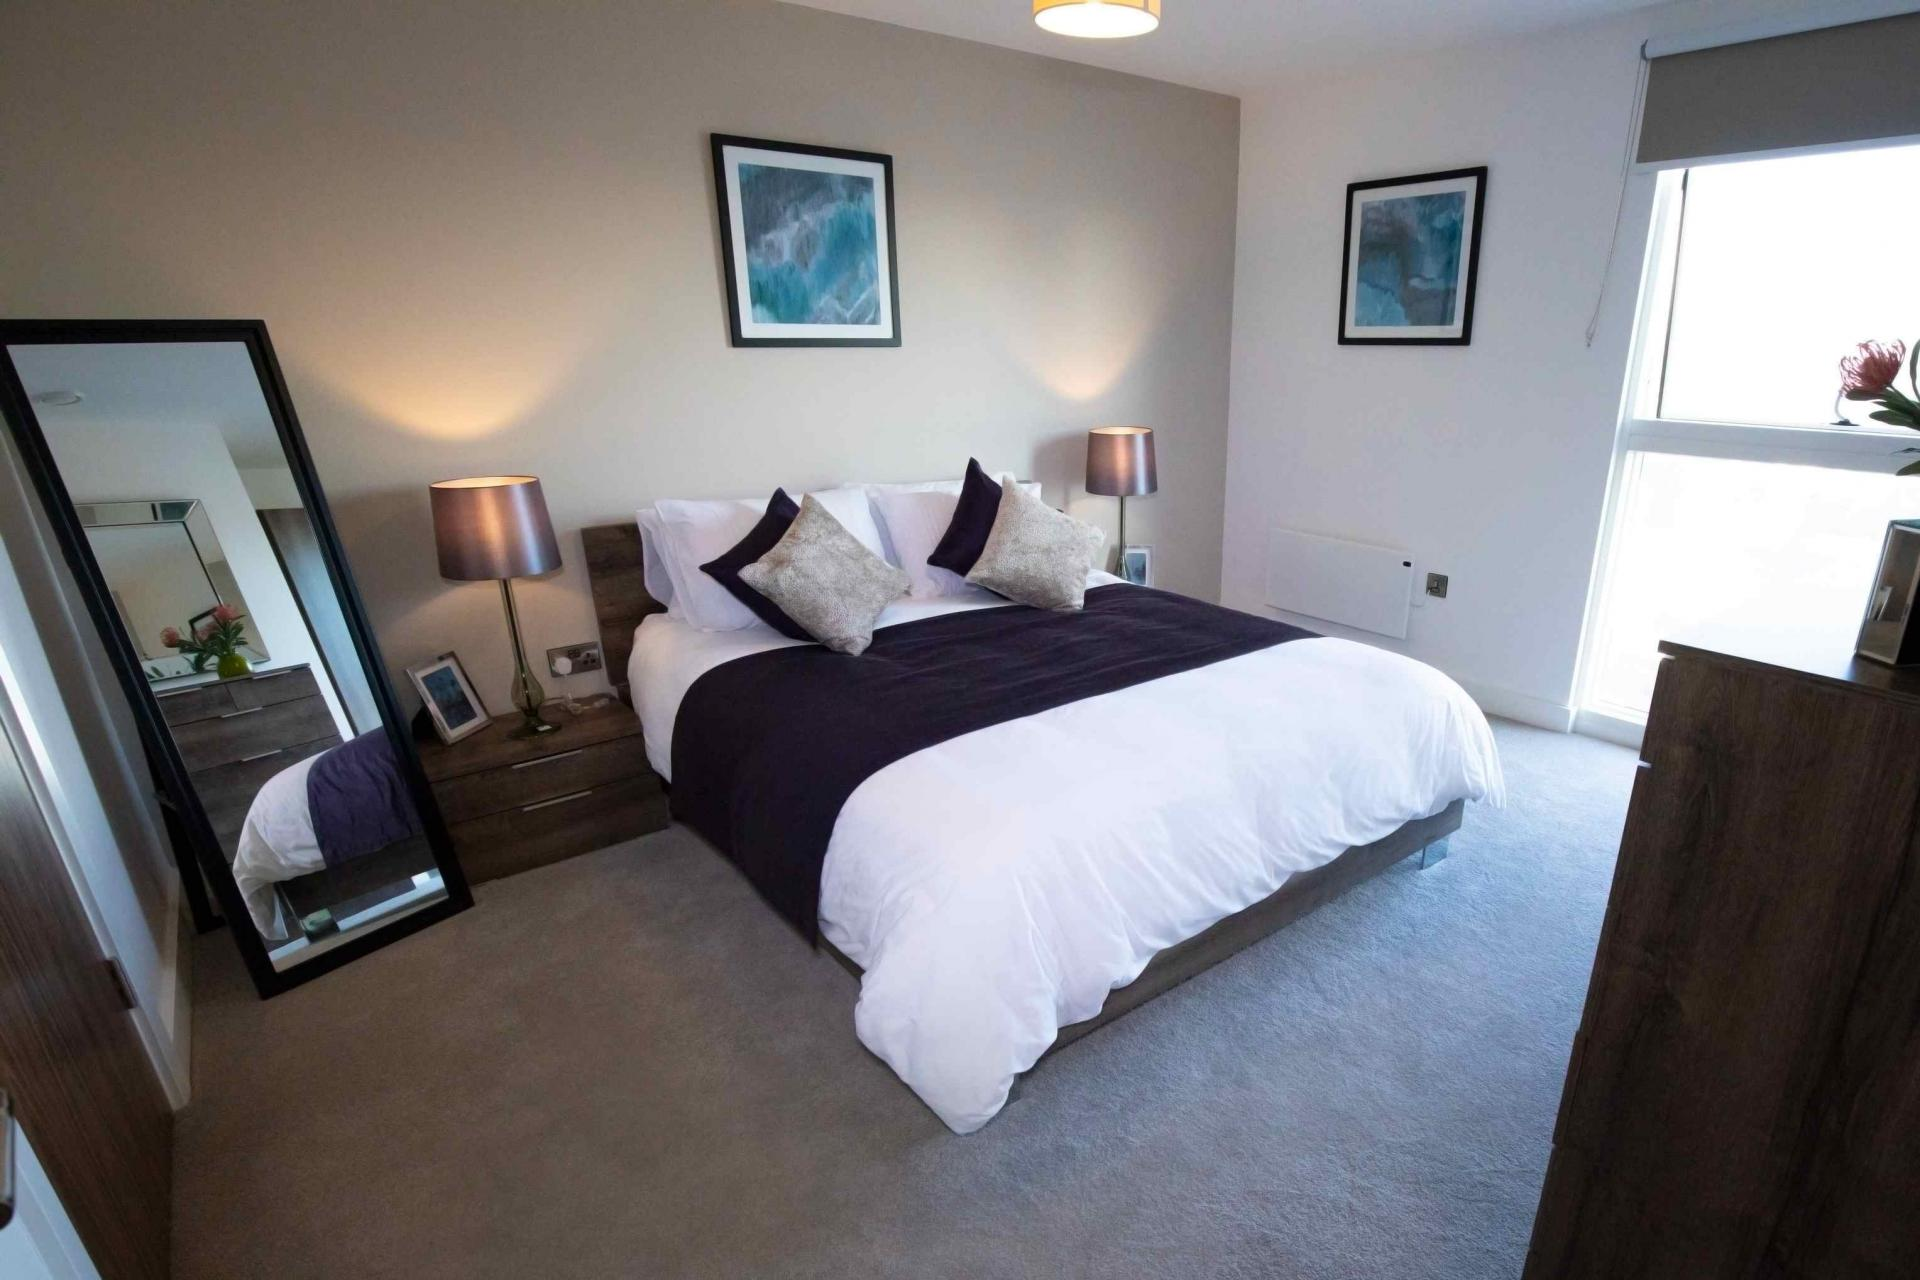 Bedroom 1 at Manchester Greengate Apartments - Citybase Apartments